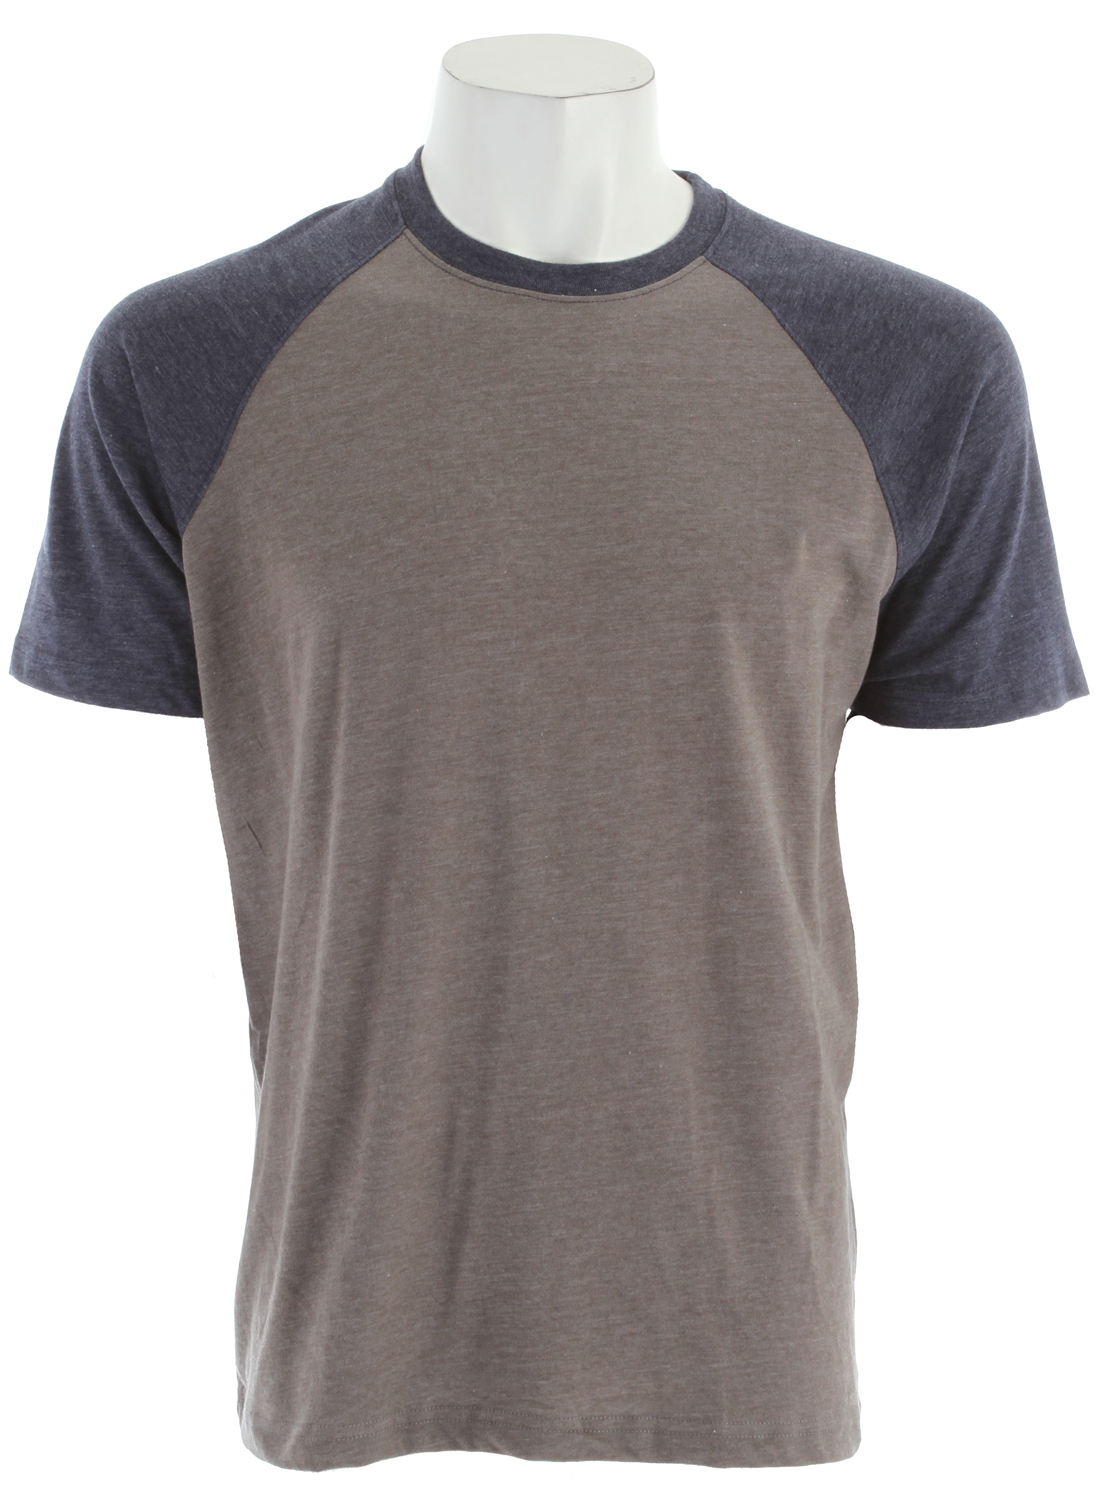 Key Features of The RVCA Camby Shirt Gray Noise: Regular Fit Crew Neck Short Sleeve Regular fit 50% cotton/50% polyester jersey Short sleeve crewneck shirt with ribbing at neckband RVCA screenprinted logo at wearer's left sleeve and back neck Contrast sleeves and neck band - $30.00